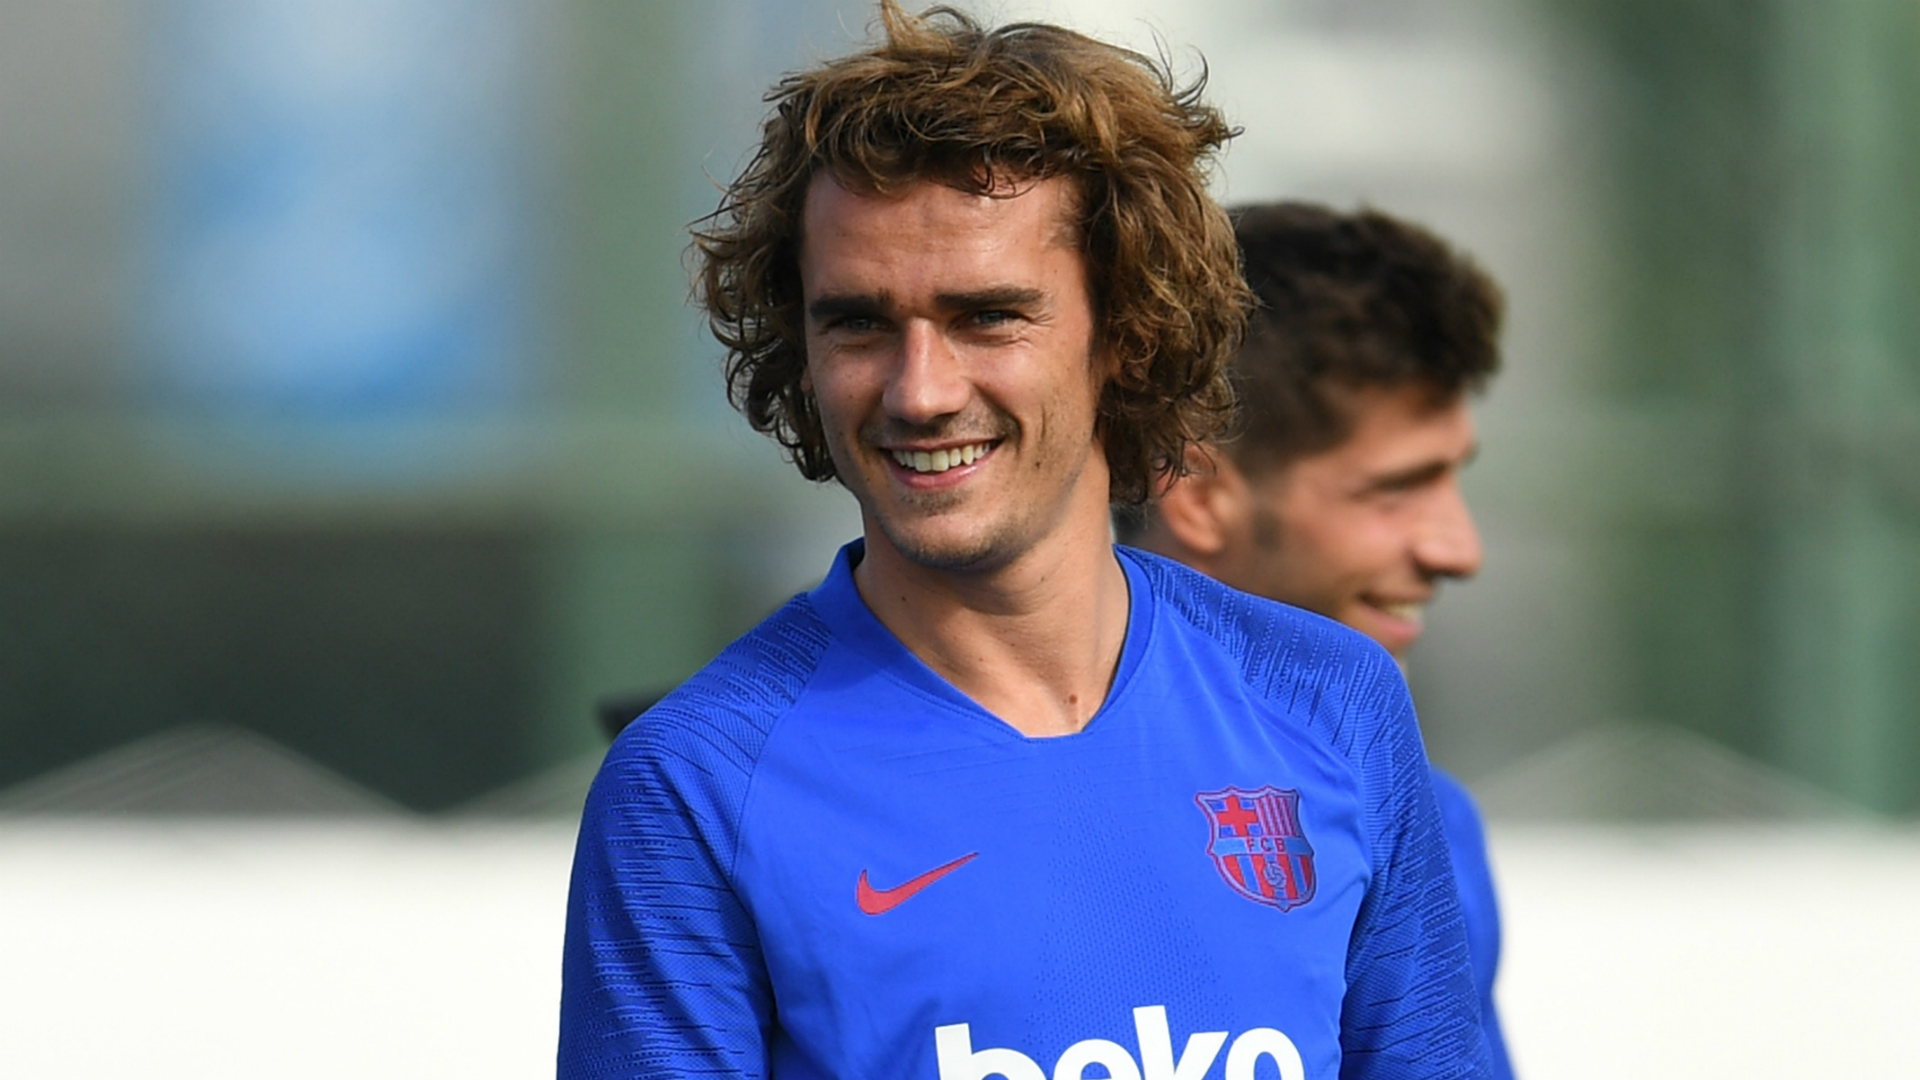 Griezmann cried tears of joy after joining Barca from Atletico